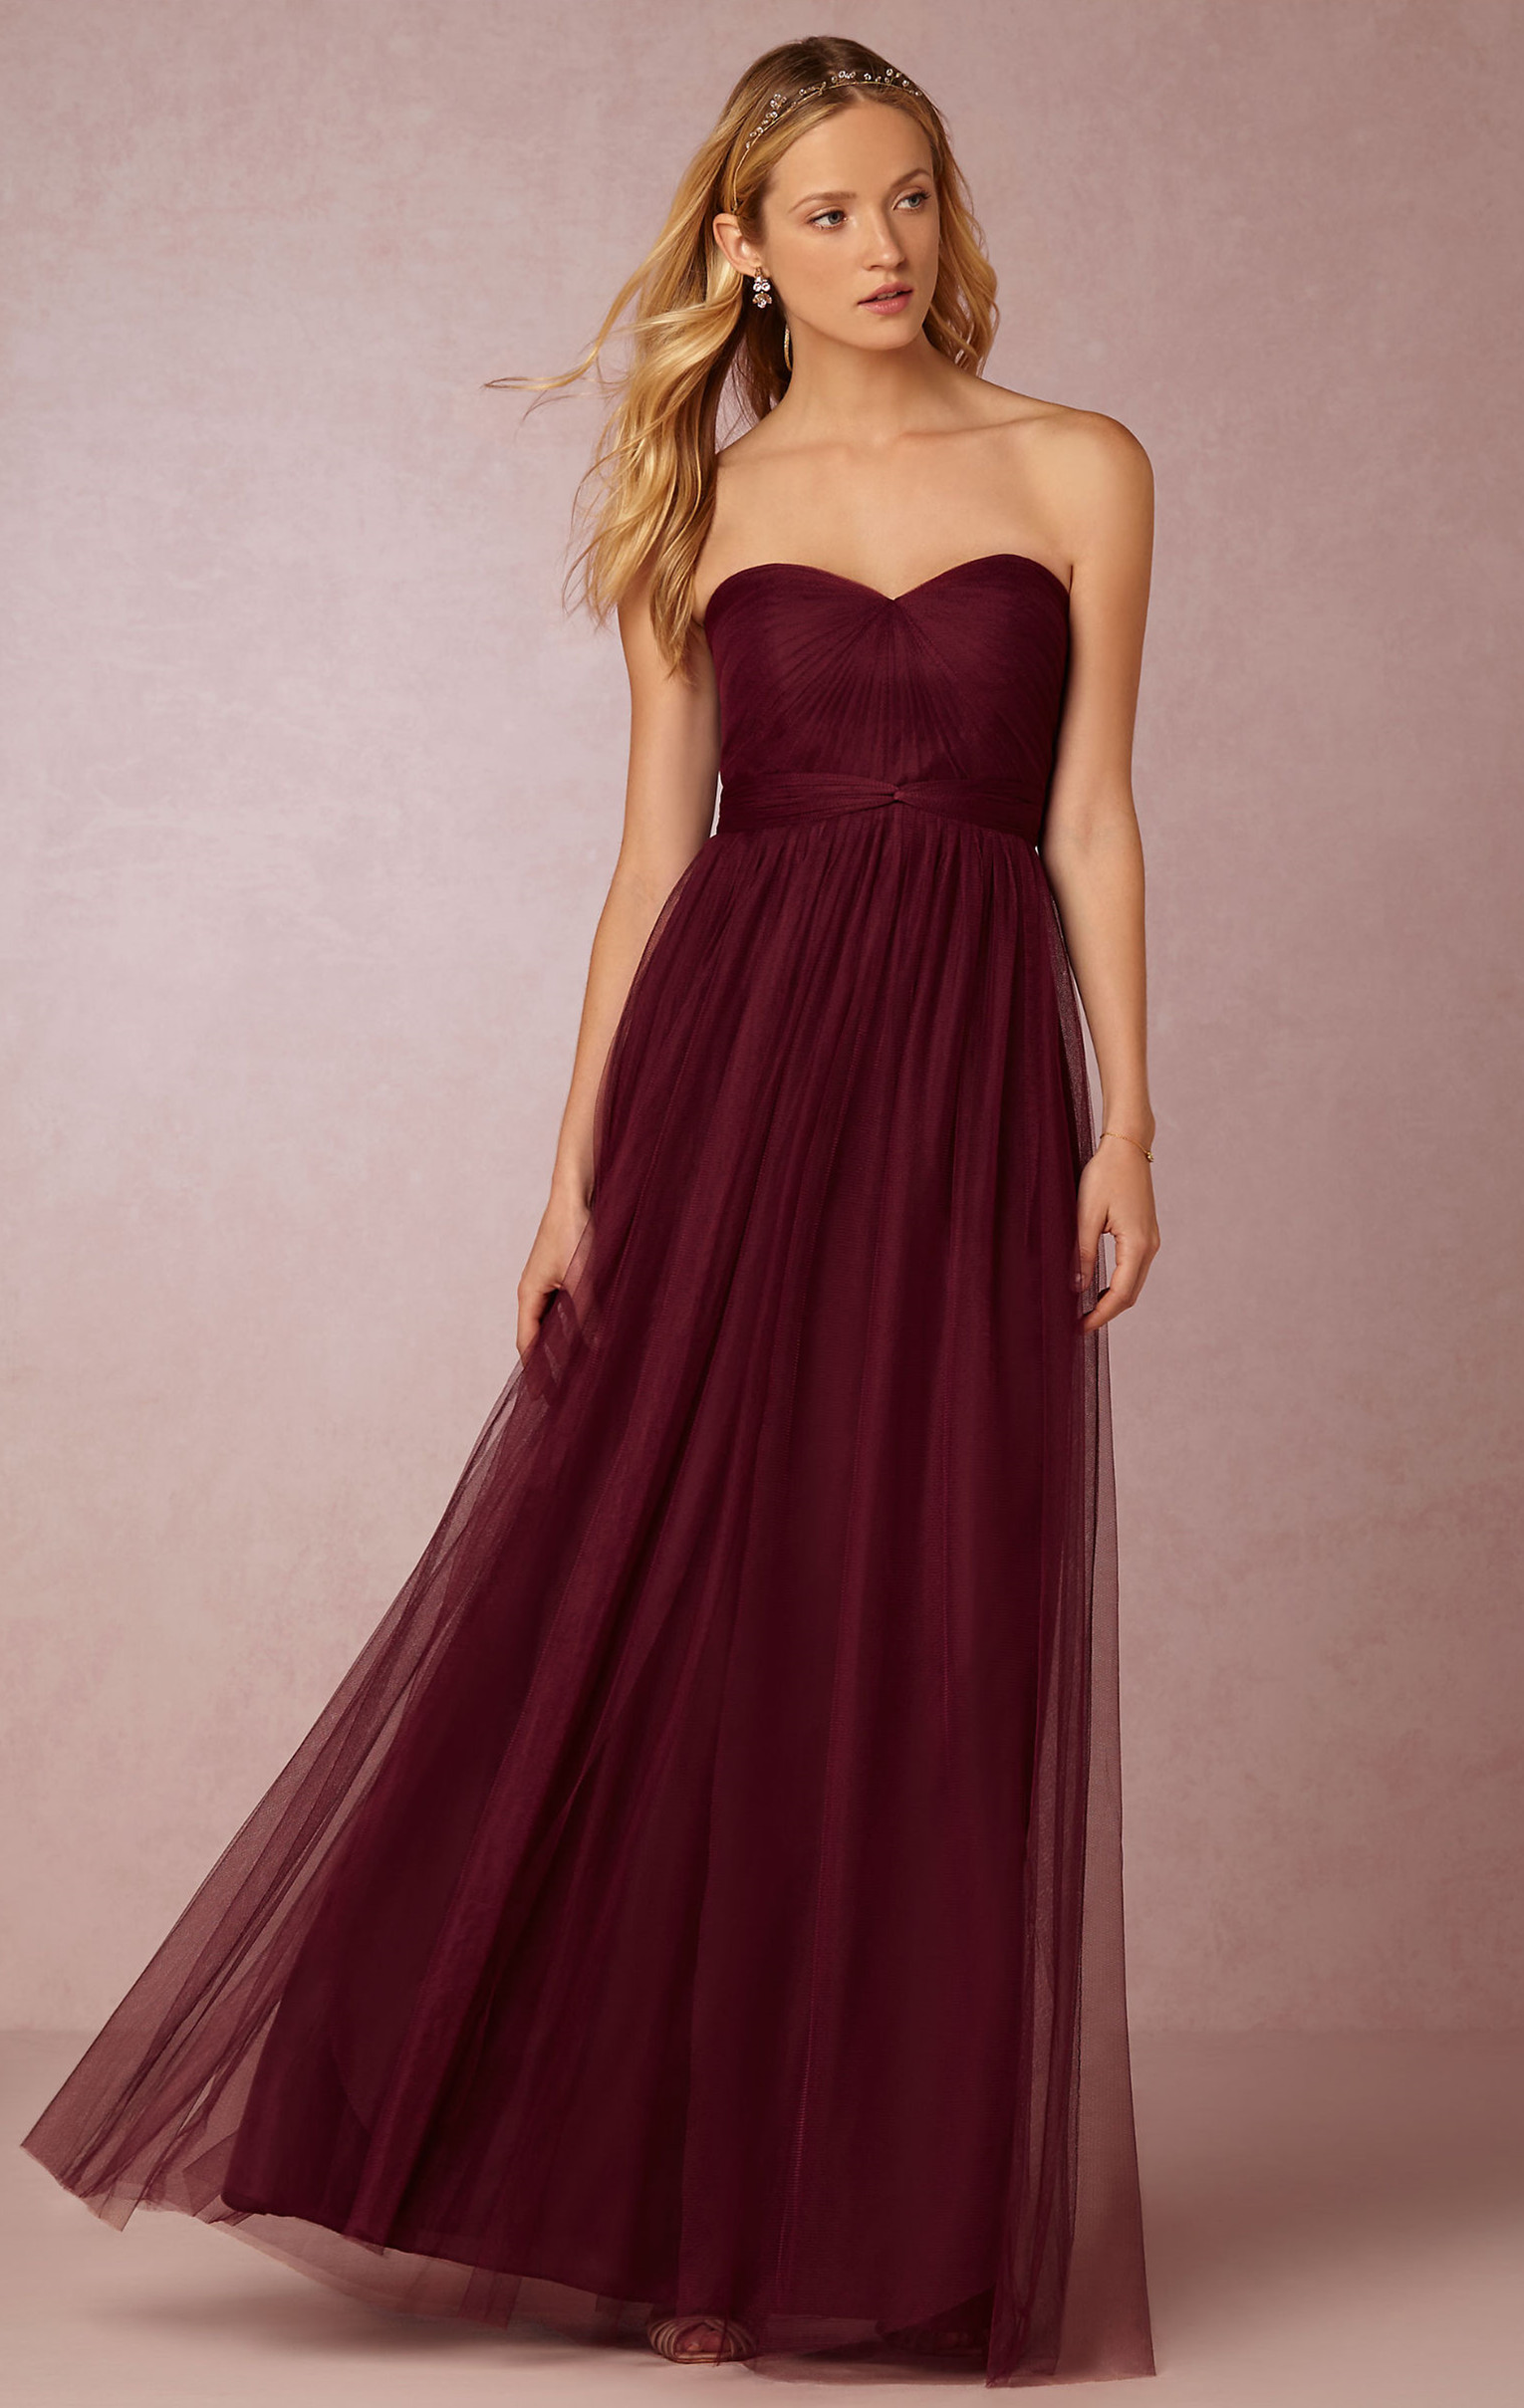 20 most popular red bridesmaid dresses for different shapes burgundy tulle bridesmaid dress ombrellifo Image collections